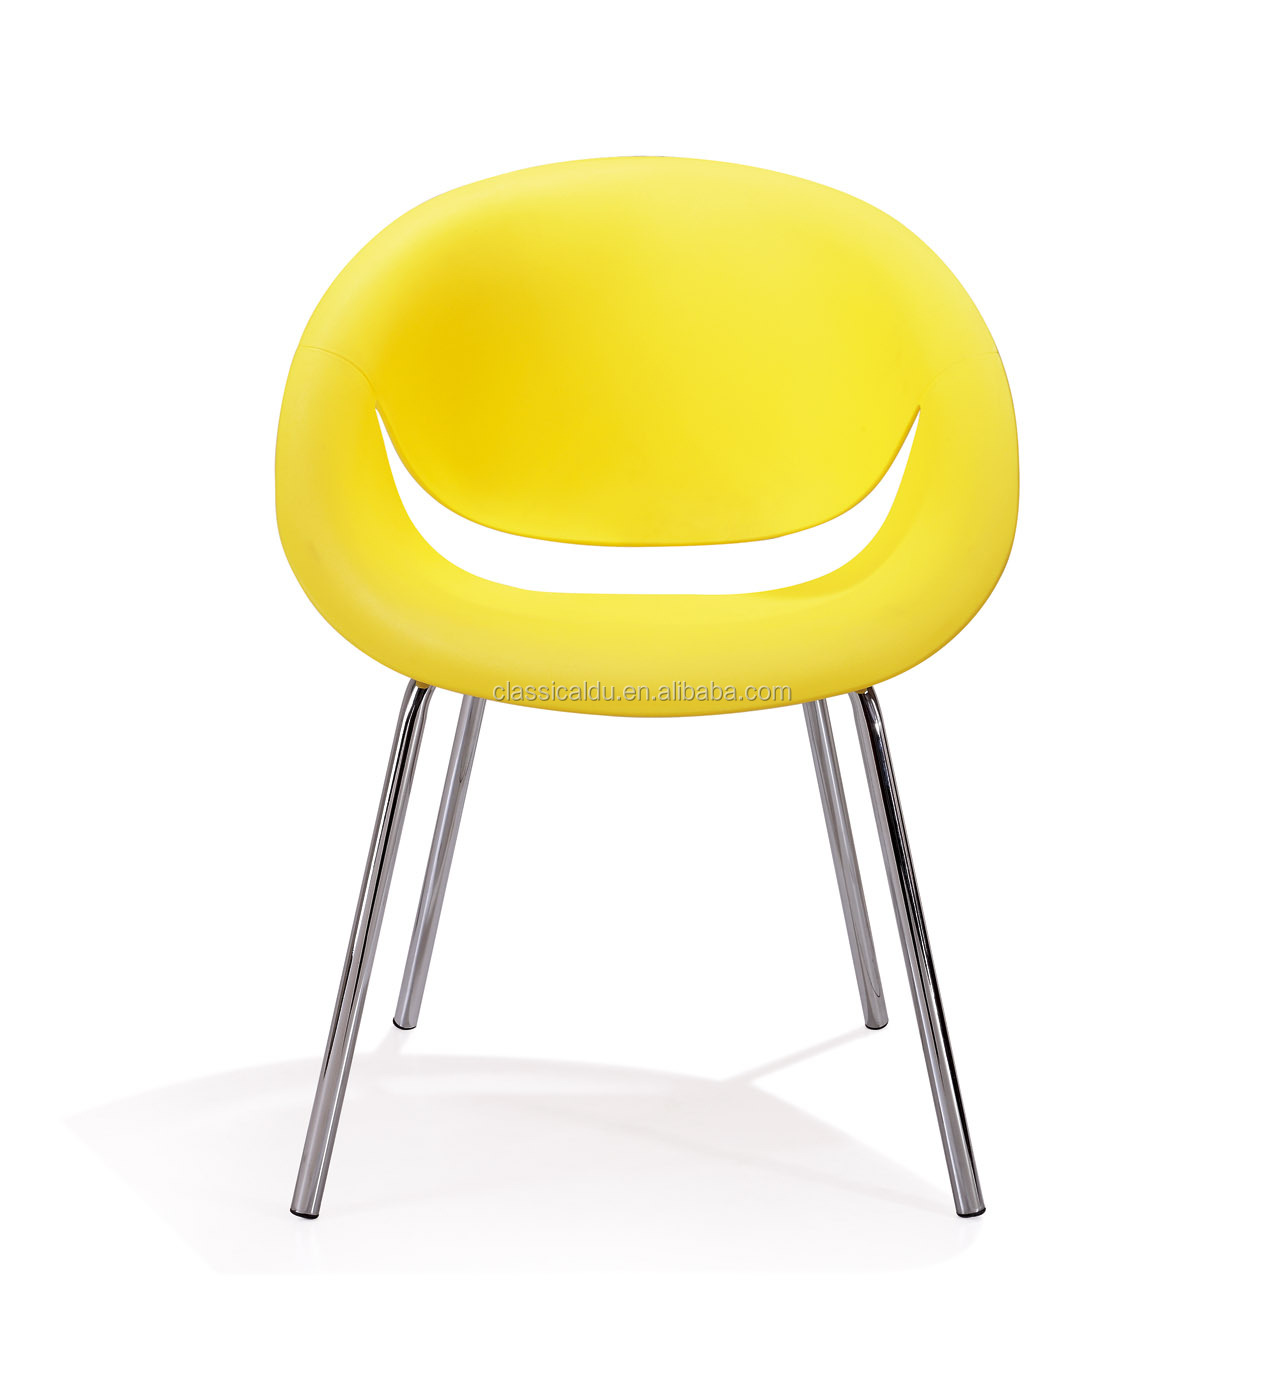 Plastic Chair Cheap Restauran T Tables Chairs Restaurant Dining Tables And Chairs H 421 View